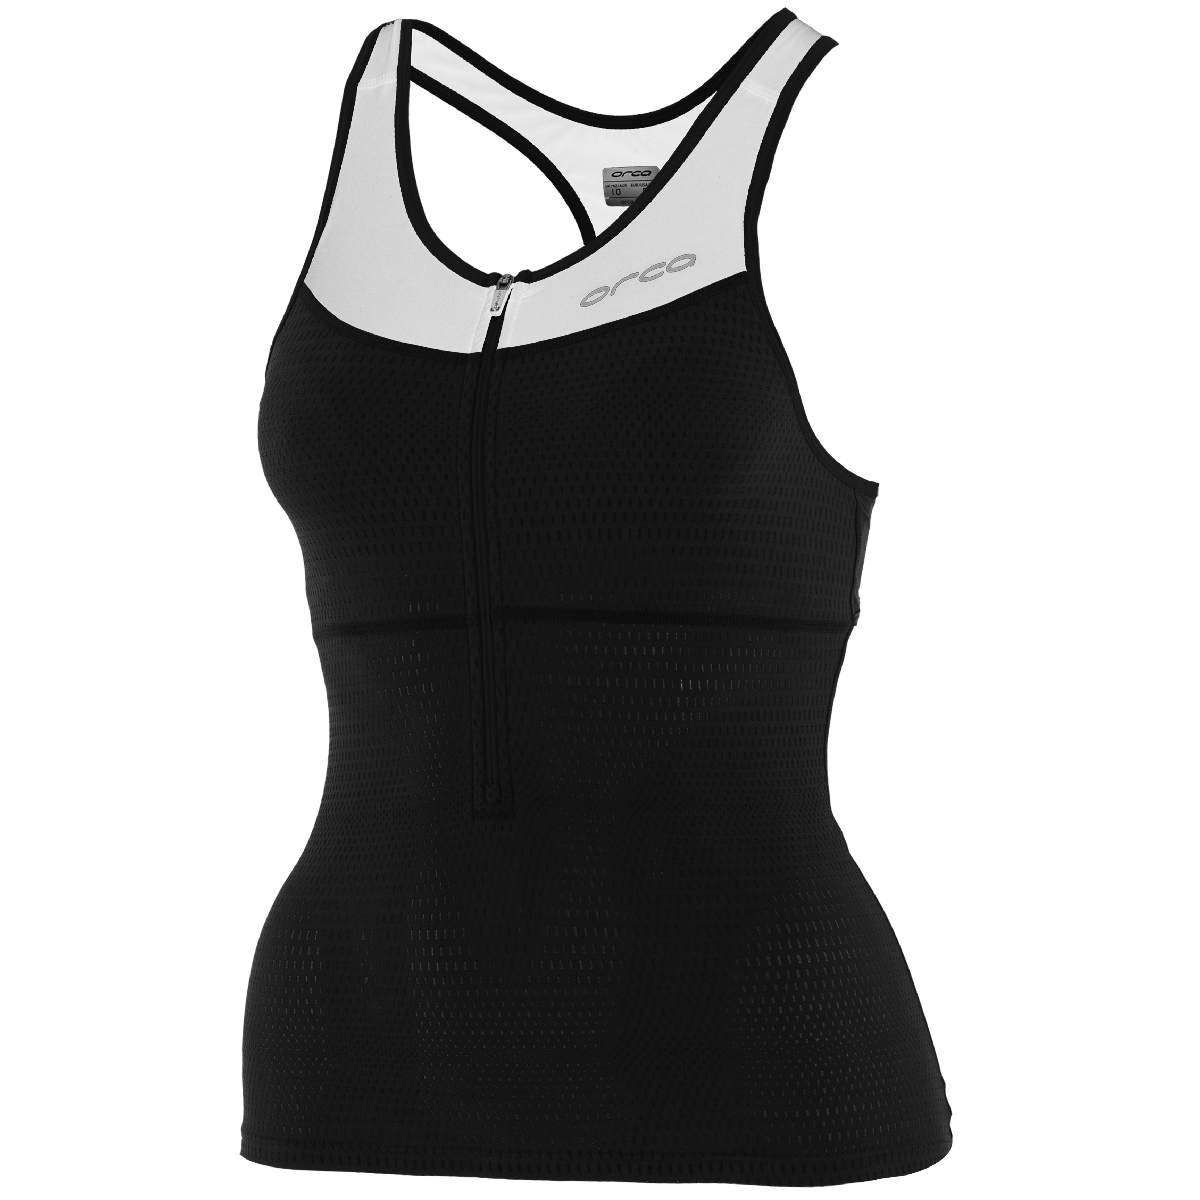 Orca 226 Support Triathlon Top Women's Size XL Black White U.S.A. & Canada